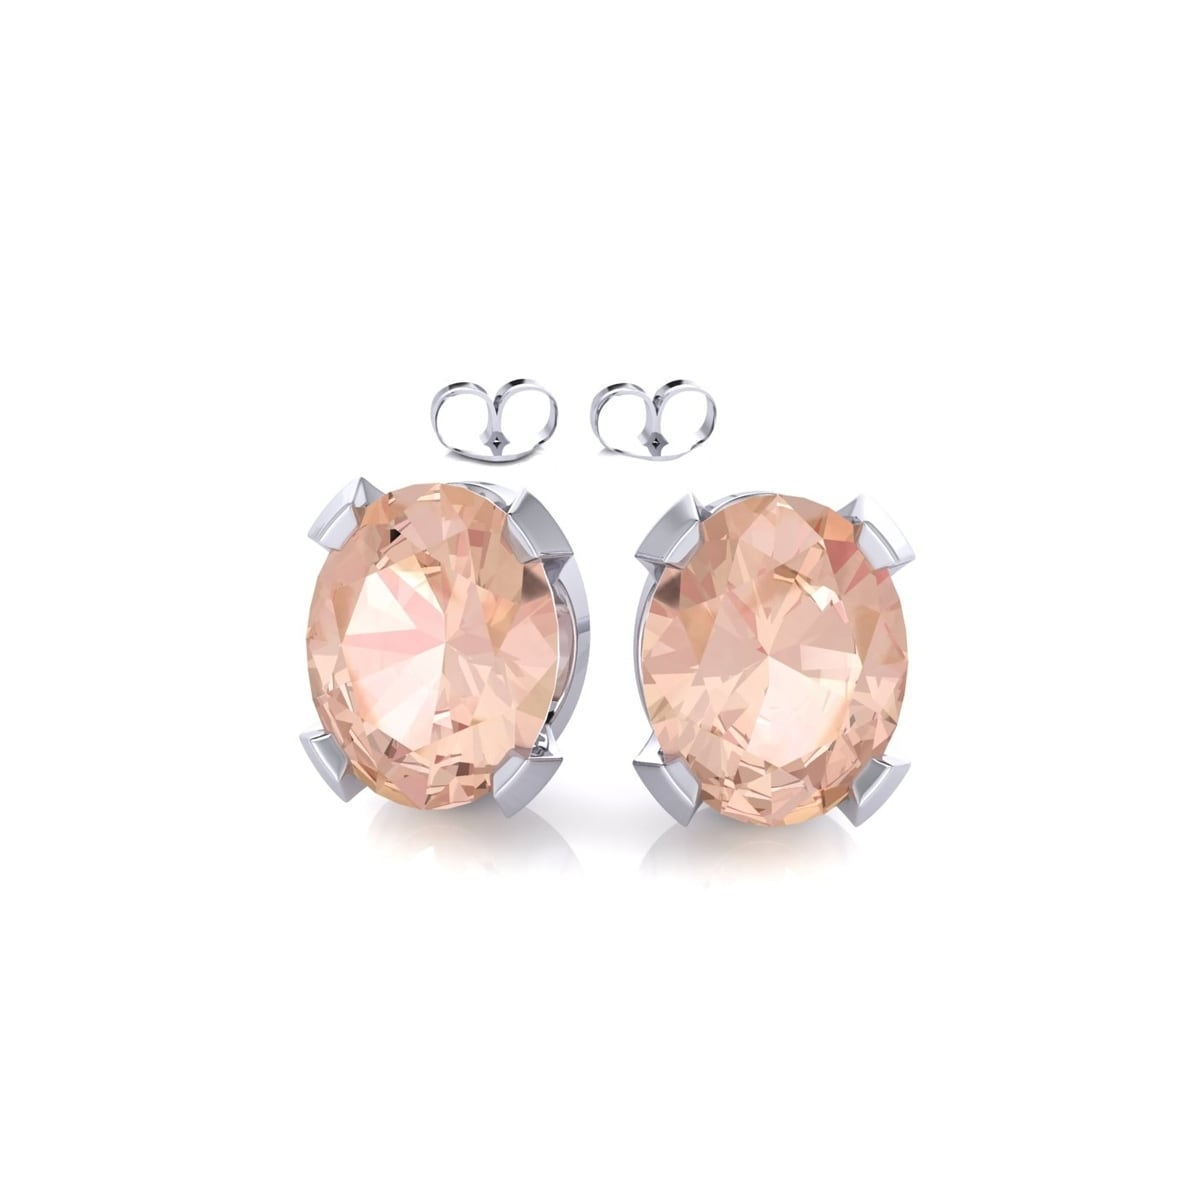 mg a earrings fifth stud products morganite bond